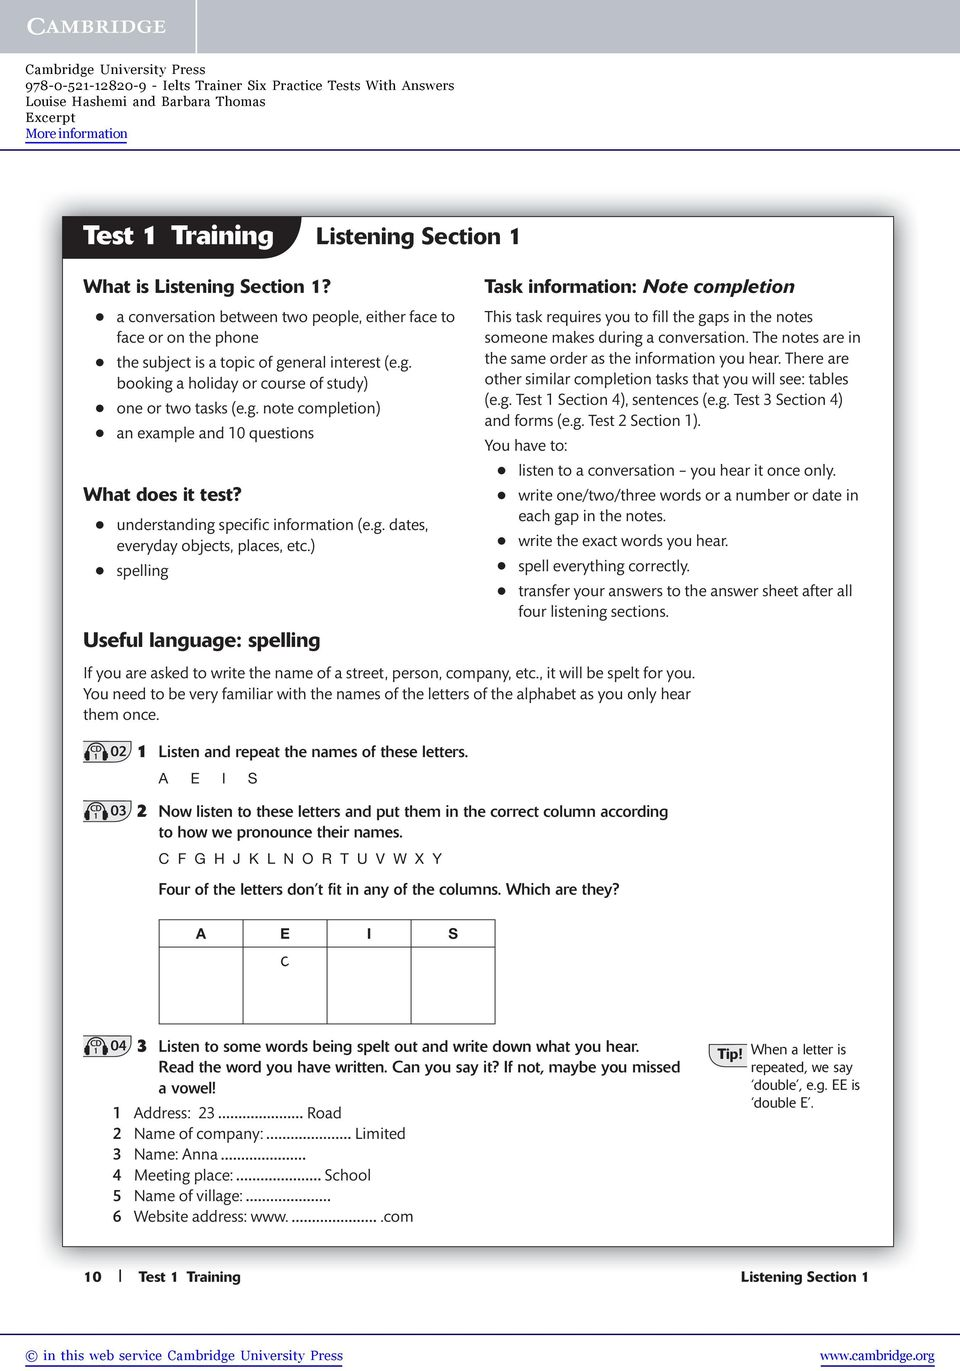 Test 1 Training Listening Section 1 - PDF